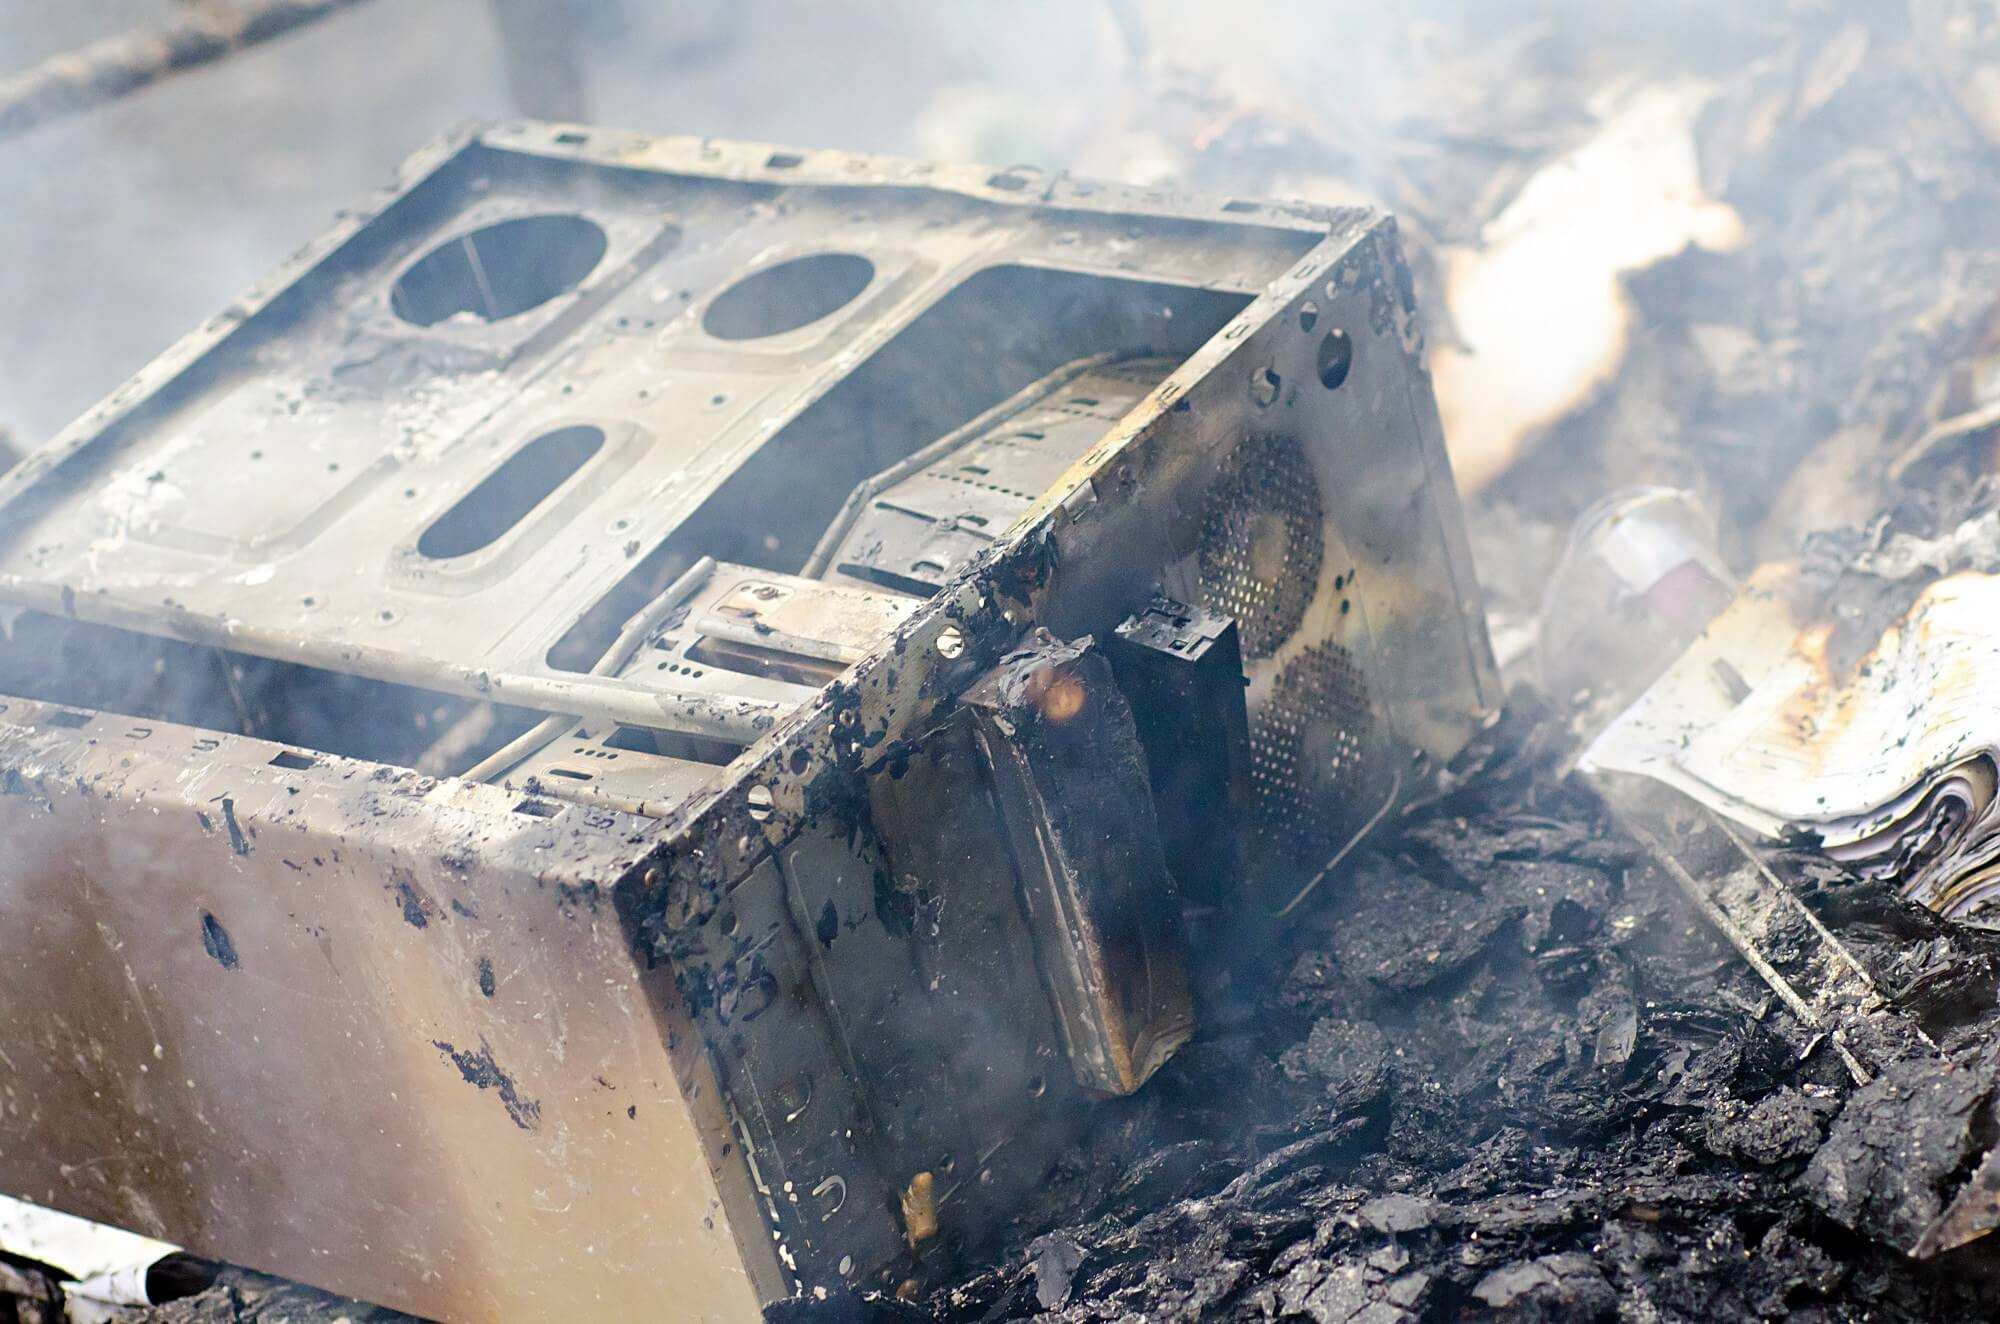 Twitch streamer's PC build goes up in smoke